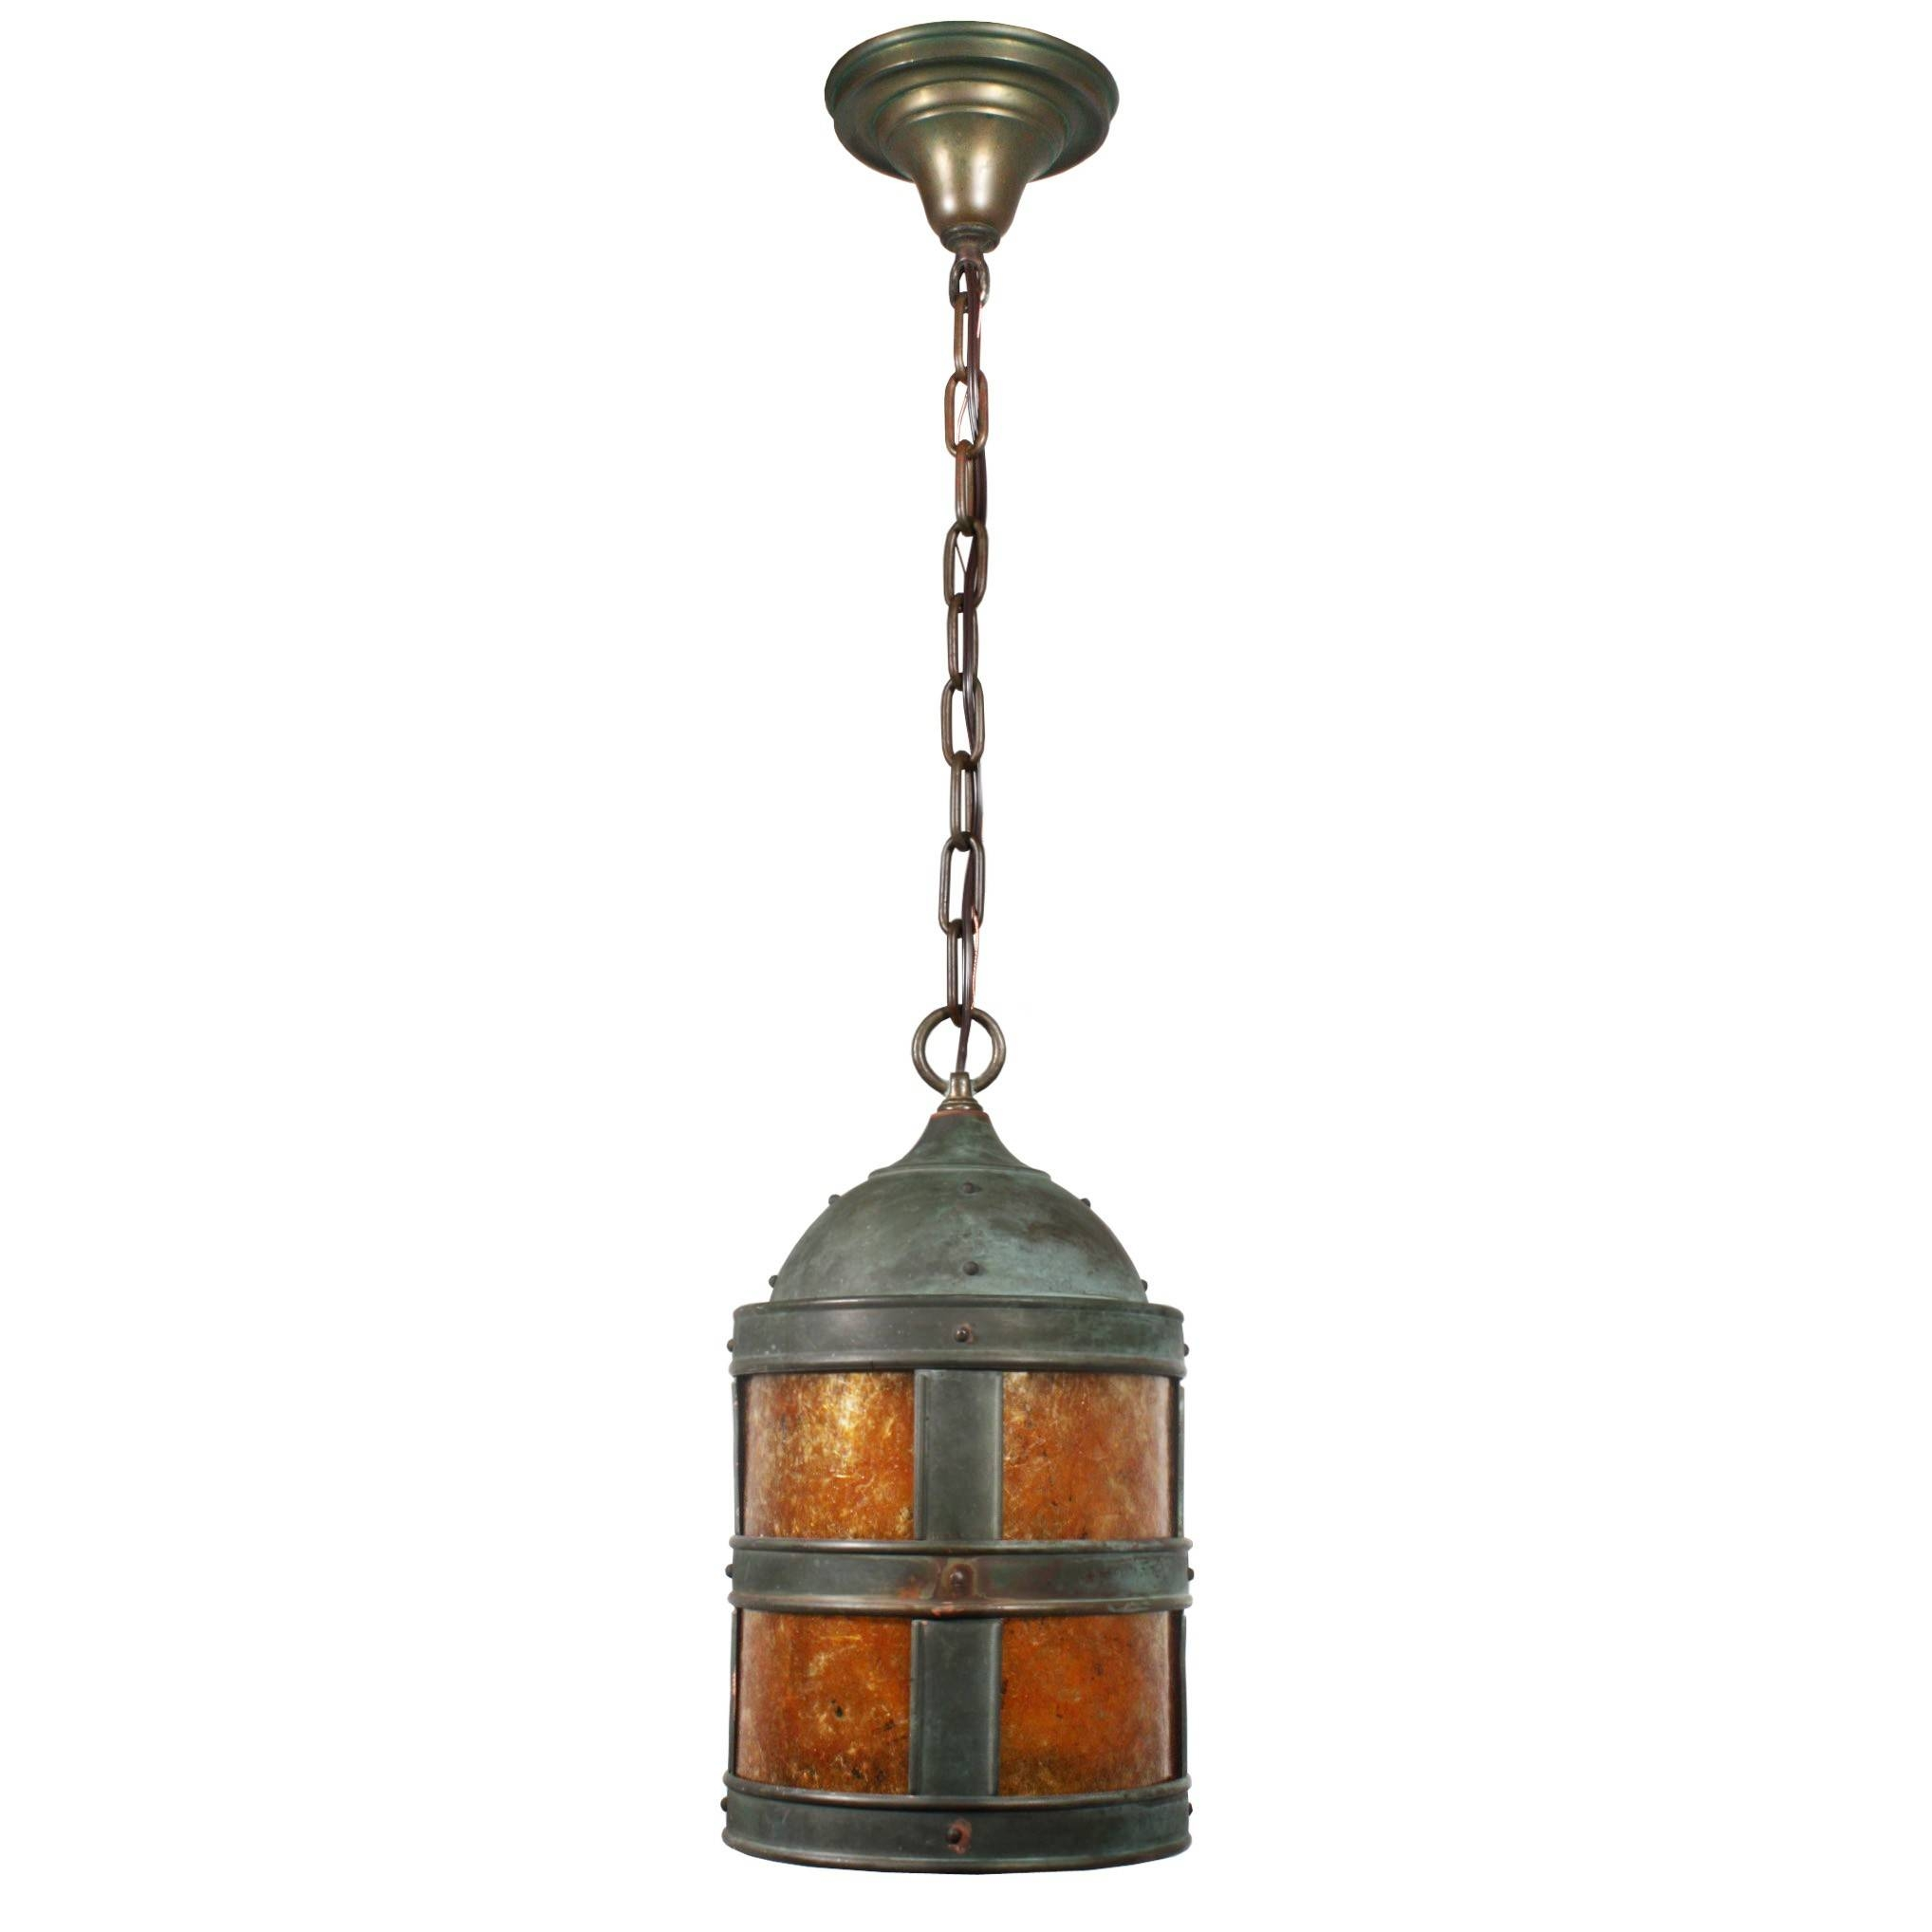 Handsome Vintage Copper Arts & Crafts Pendant Light With Mica pertaining to Arts And Crafts Pendant Lighting (Image 8 of 15)